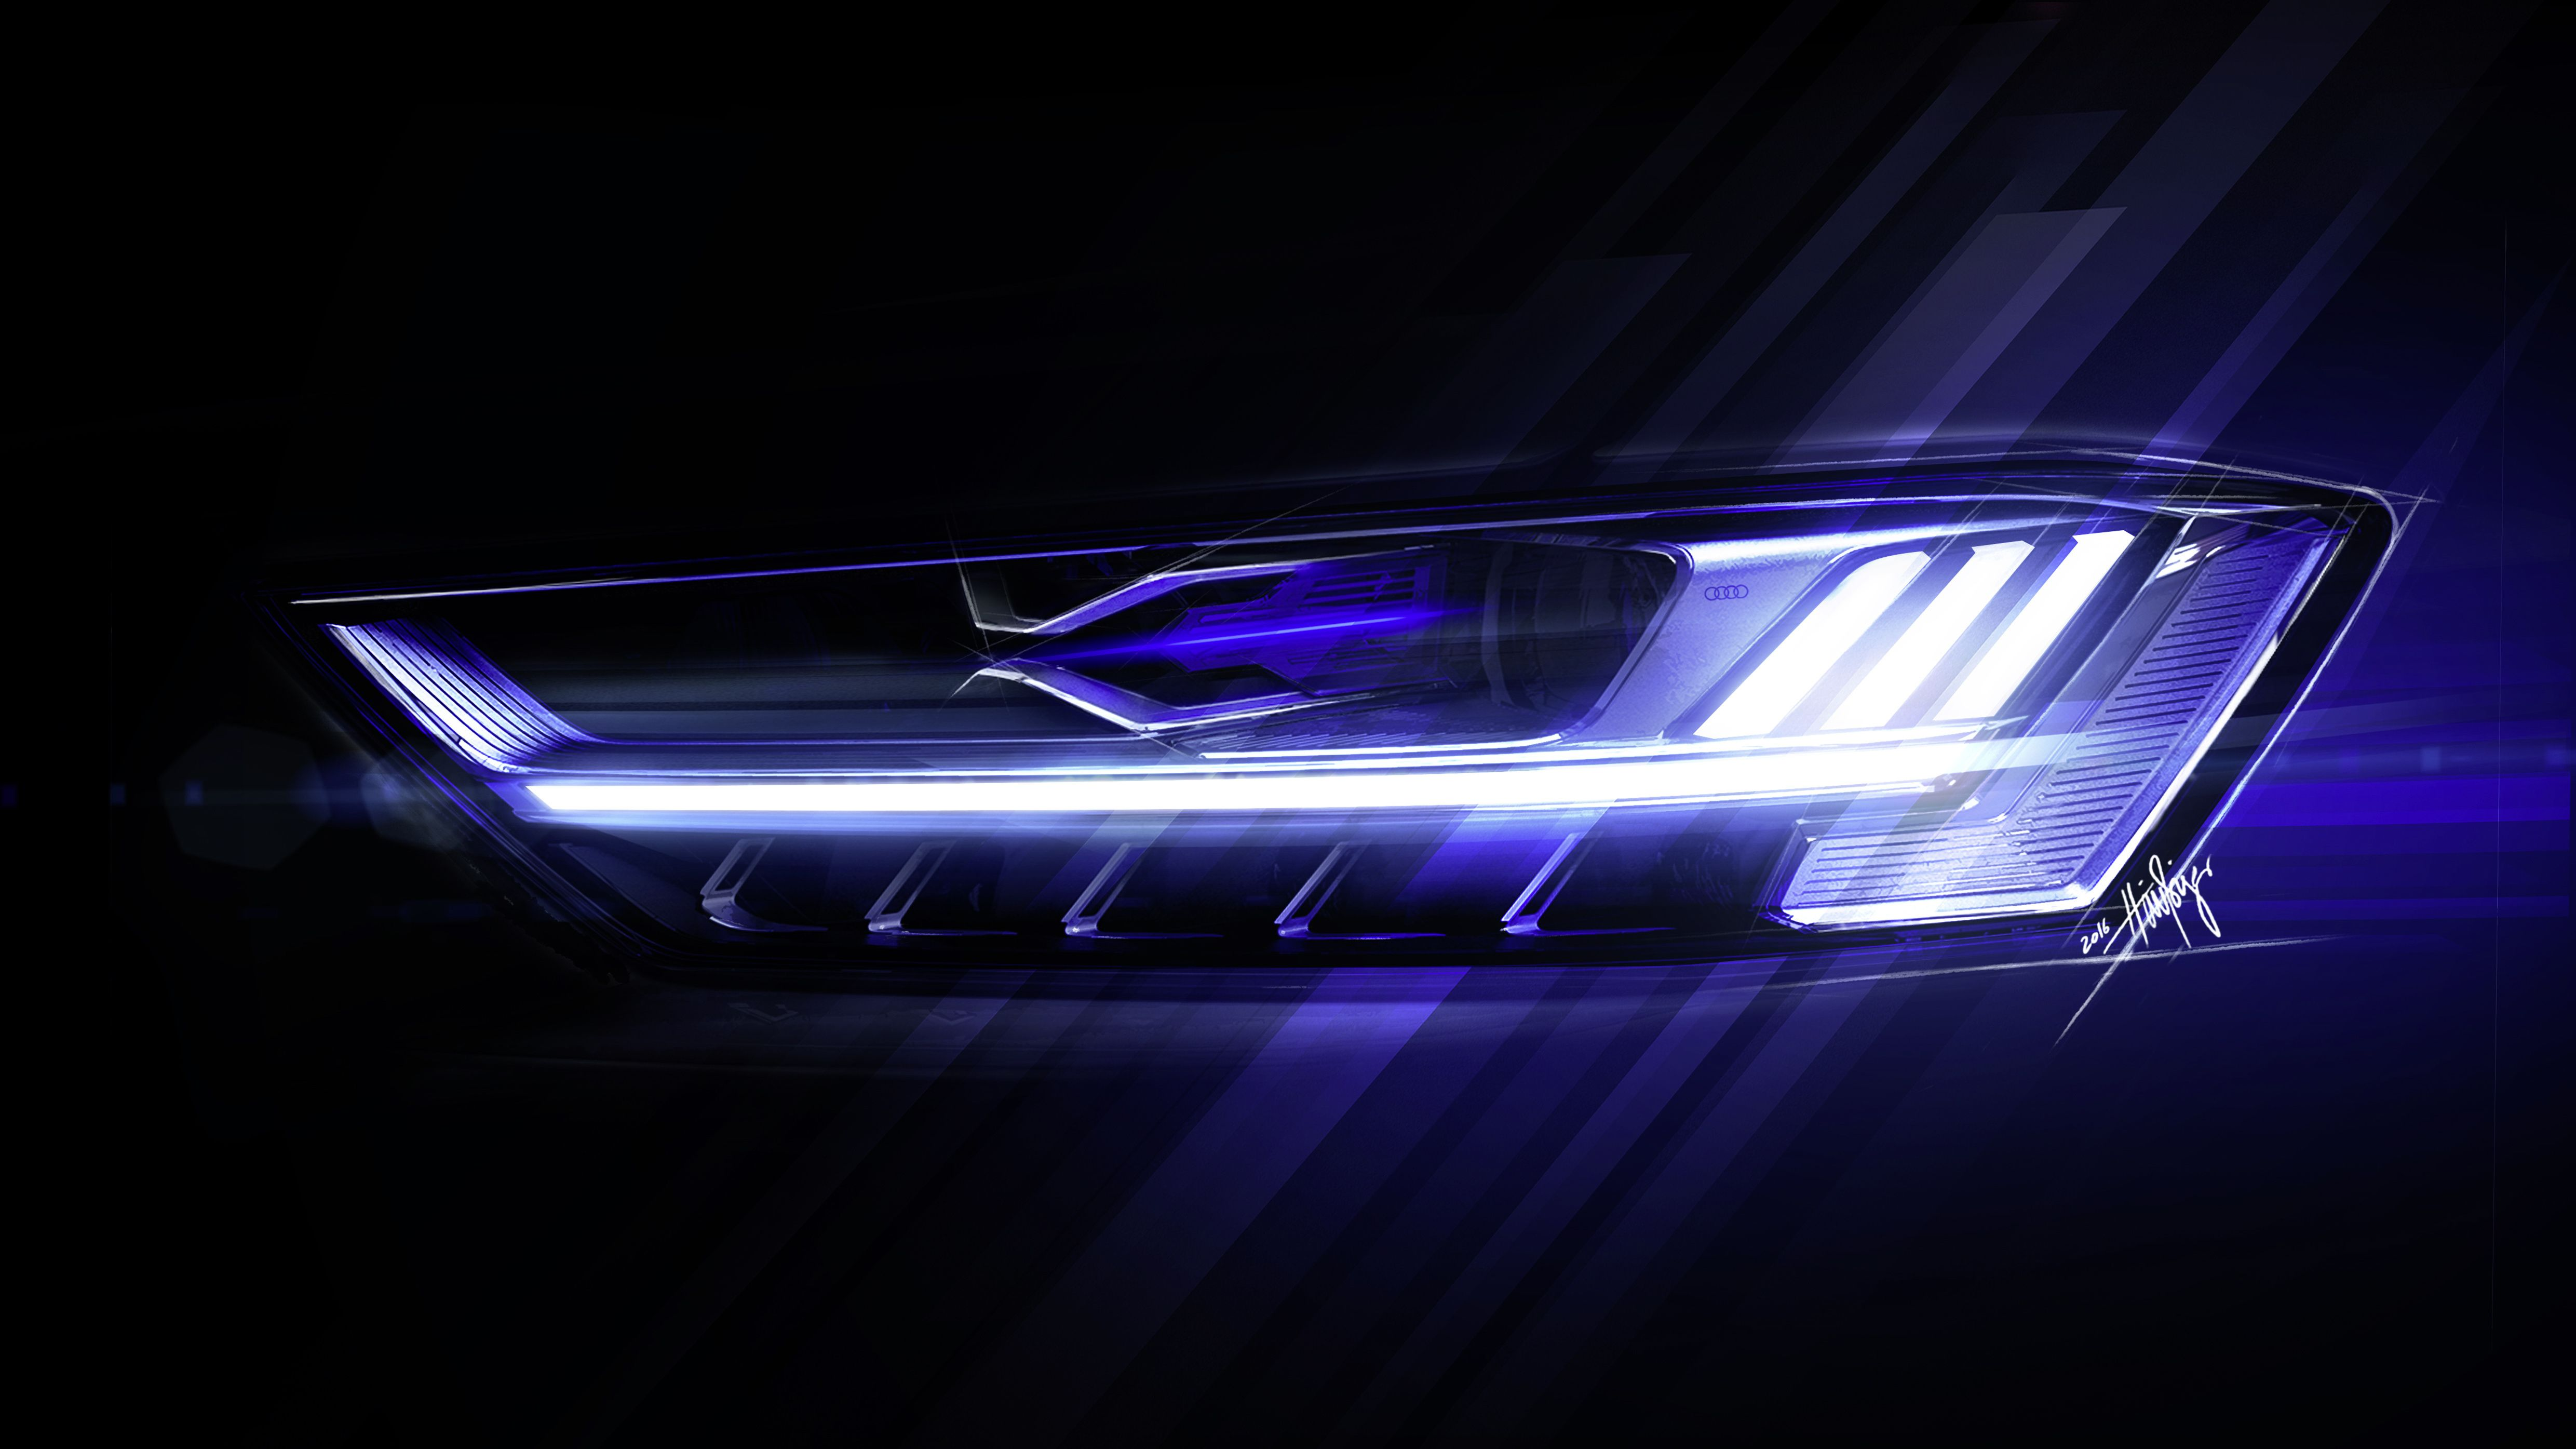 2018-Audi-A8-headlamp-sketch | Lamp | Pinterest | Audi a8, Vehicle ...